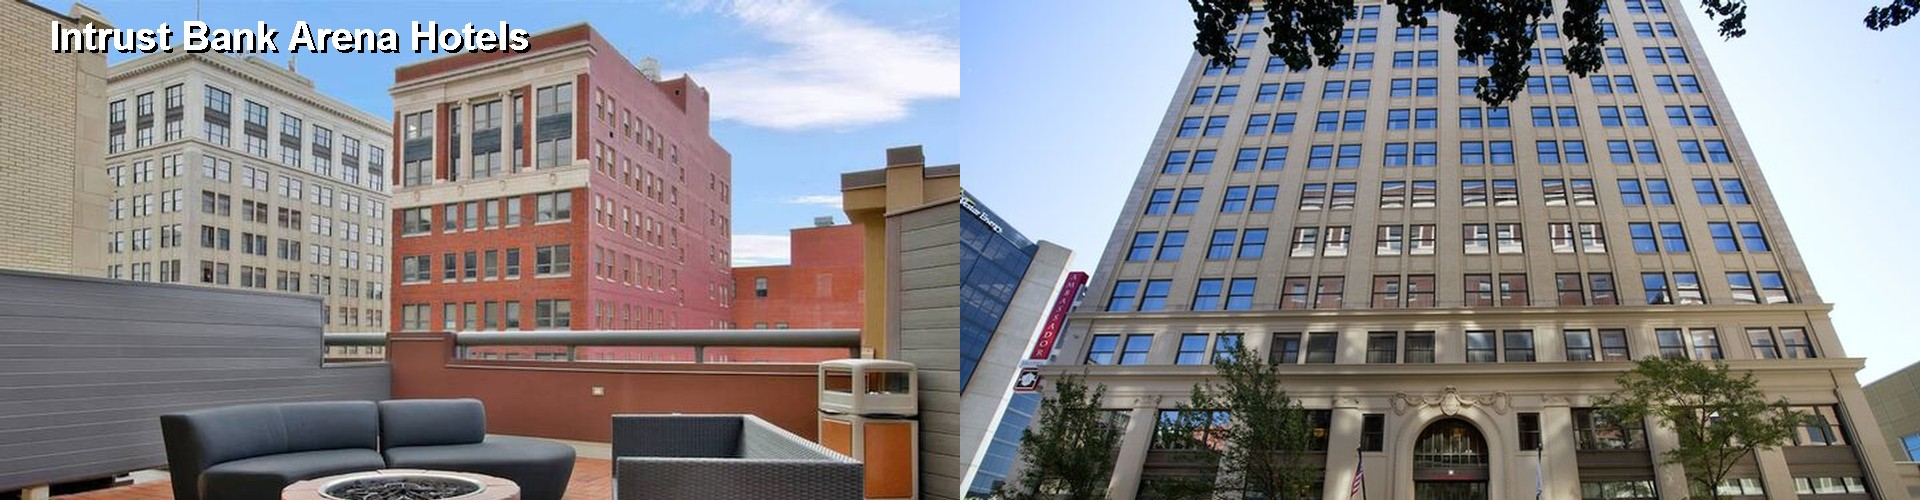 5 Best Hotels near Intrust Bank Arena